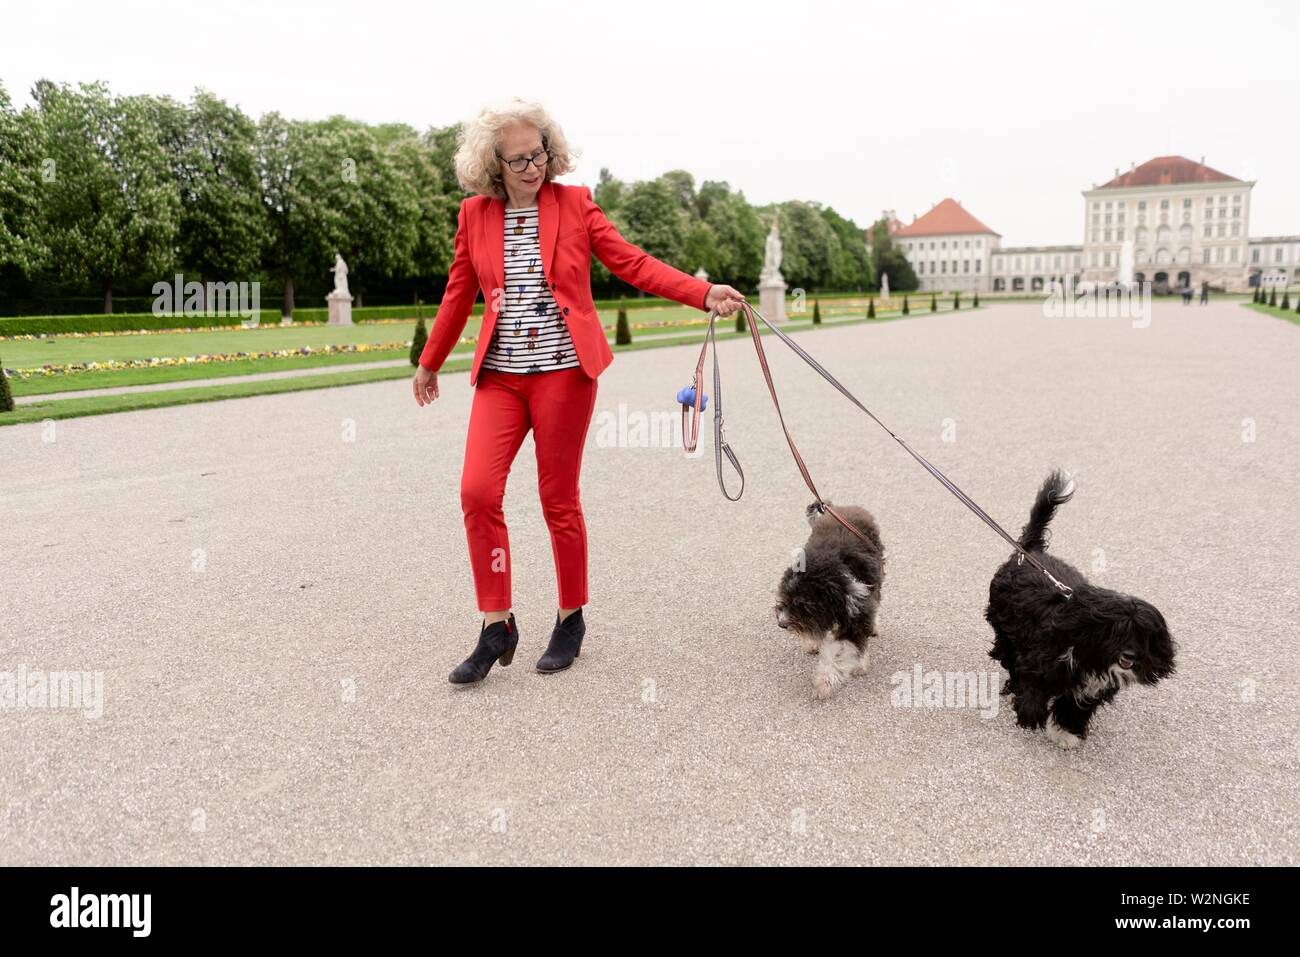 senior woman (67 years old) walking with two dogs on leash in park at touristic sight Nymphenburg palace, in Munich, Germany. - Stock Image